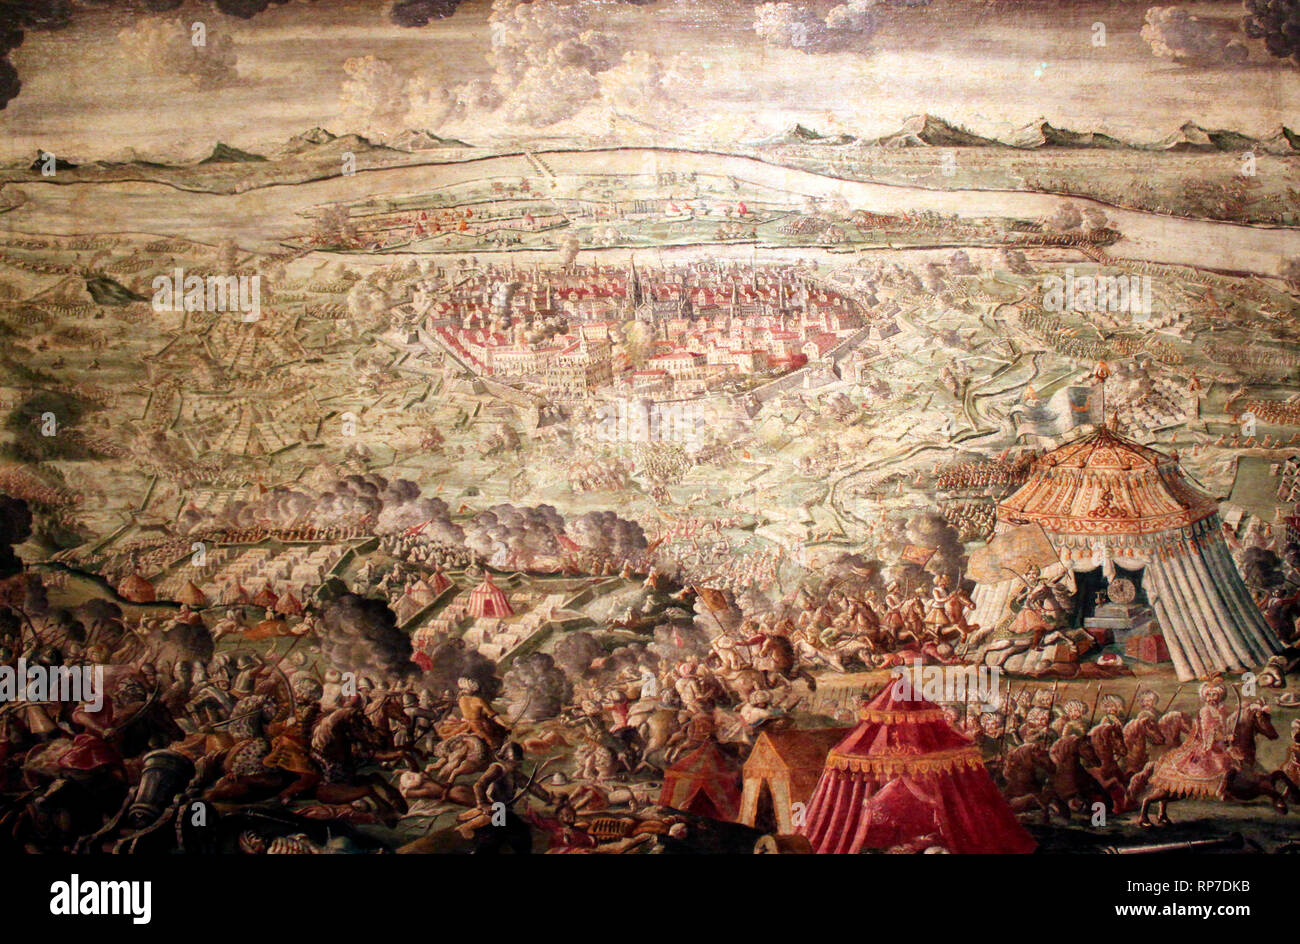 The relief of Vienna on September 12, 1683 In the decisive battle at Kahlenberg, the united imperial army succeeded in liberating Vienna after two months of siege at the hands of the turkish army. - Stock Image